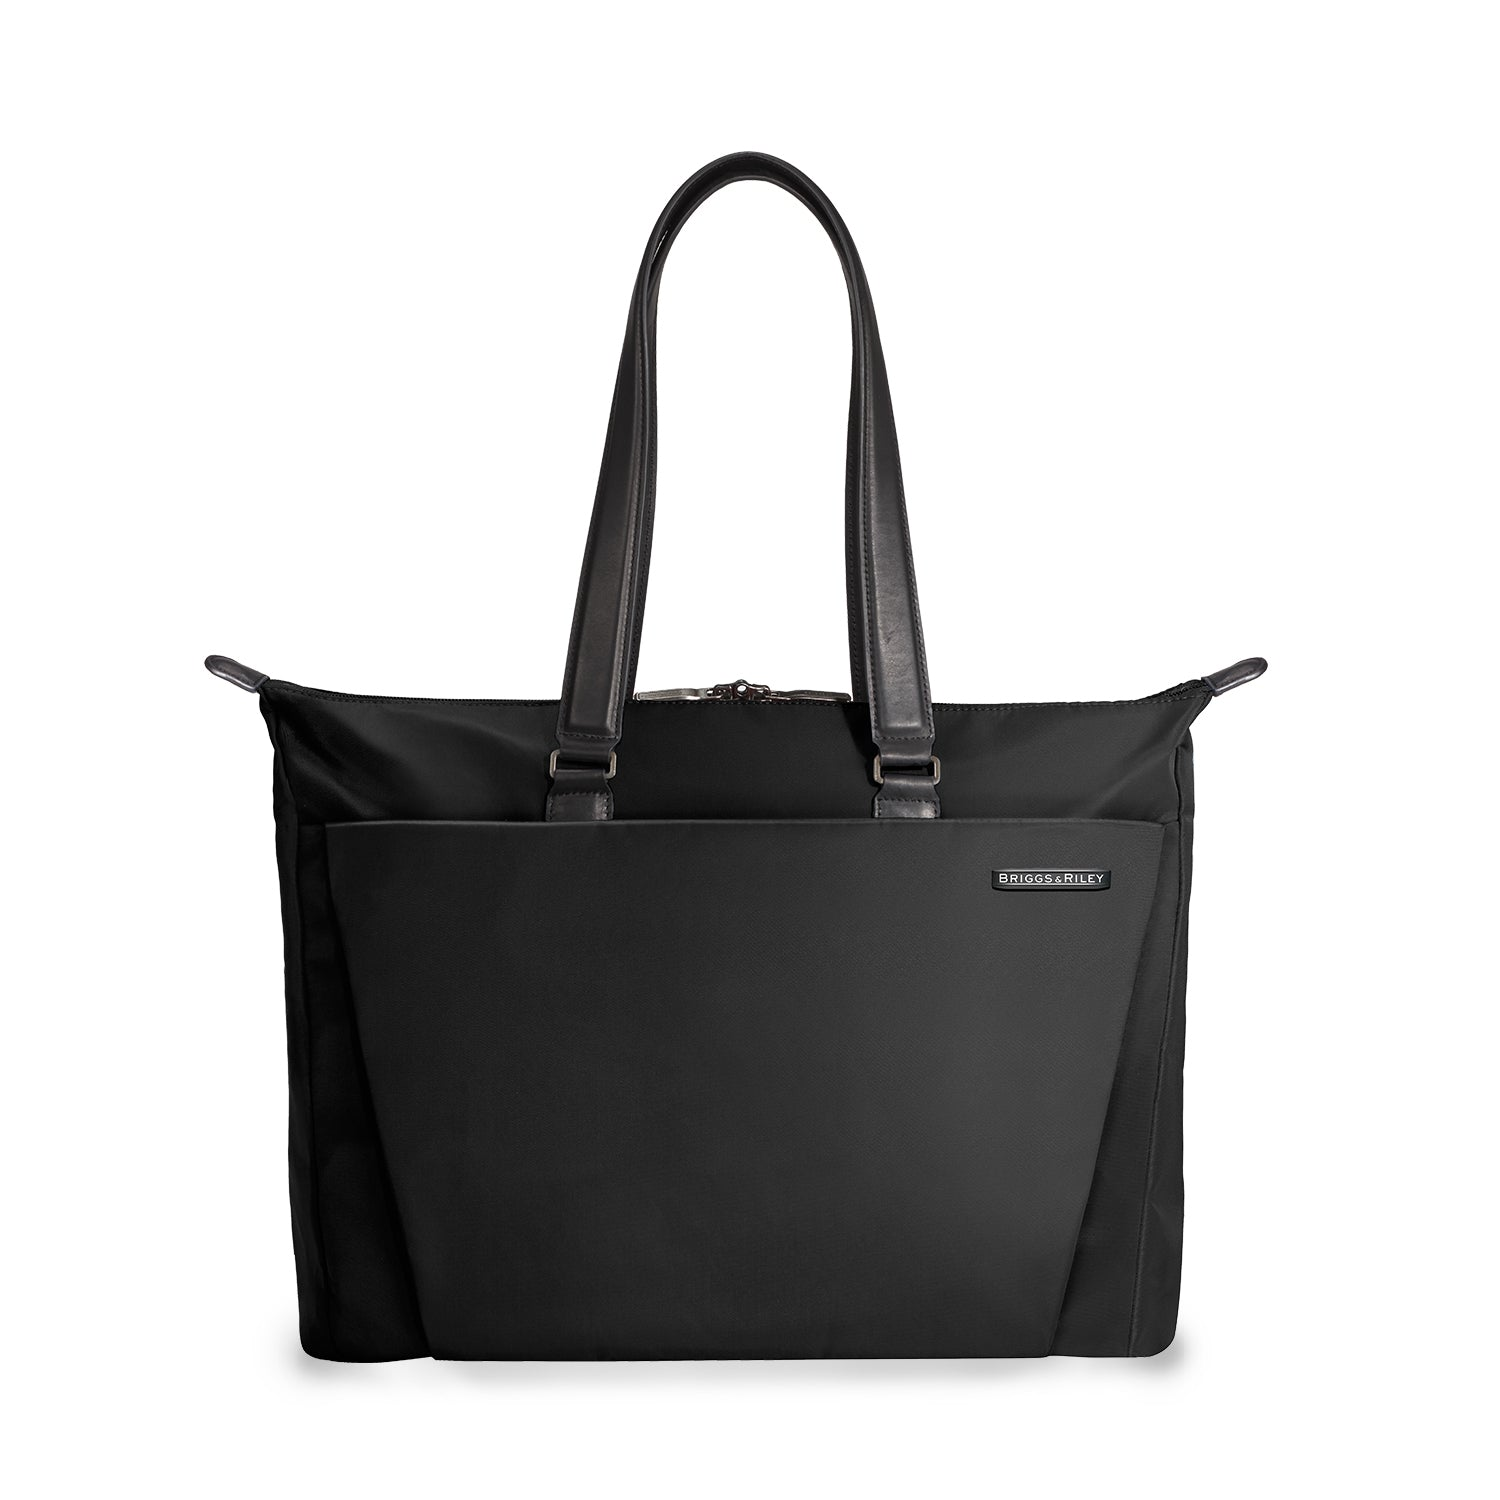 Shopping Tote - LIMITED QUANTITIES